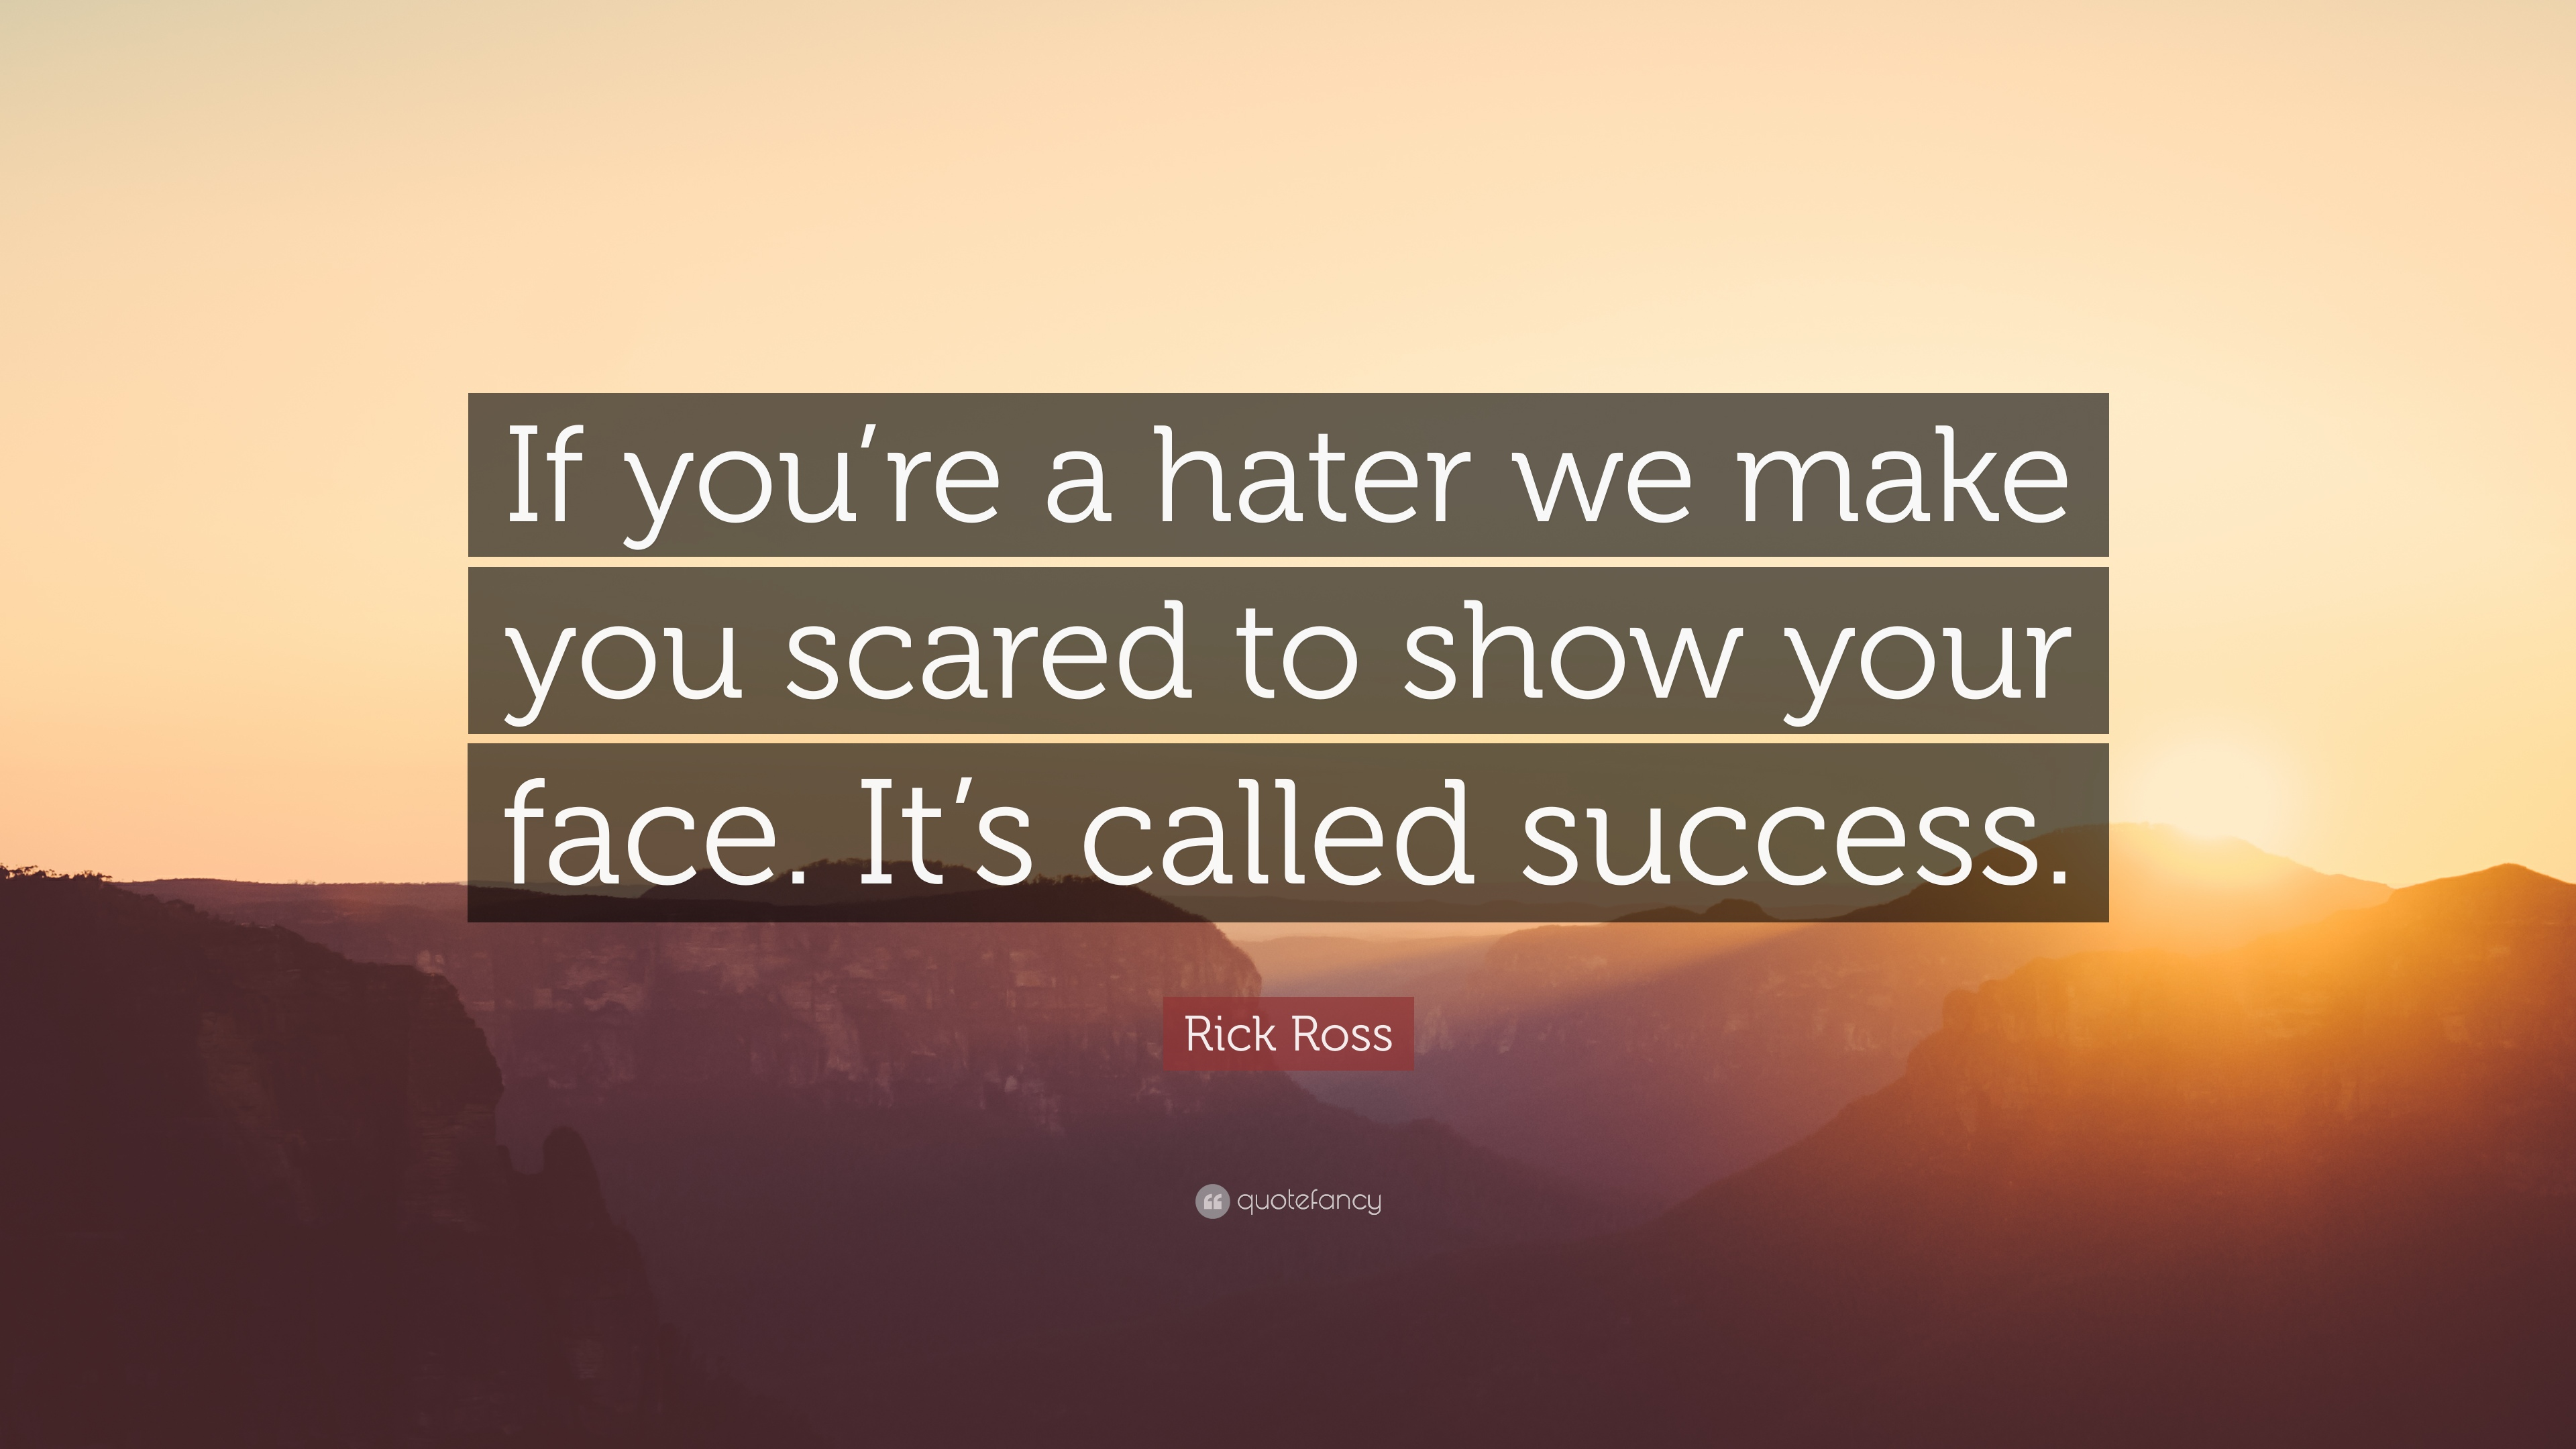 Rick Ross Quote If Youre A Hater We Make You Scared To Show Your